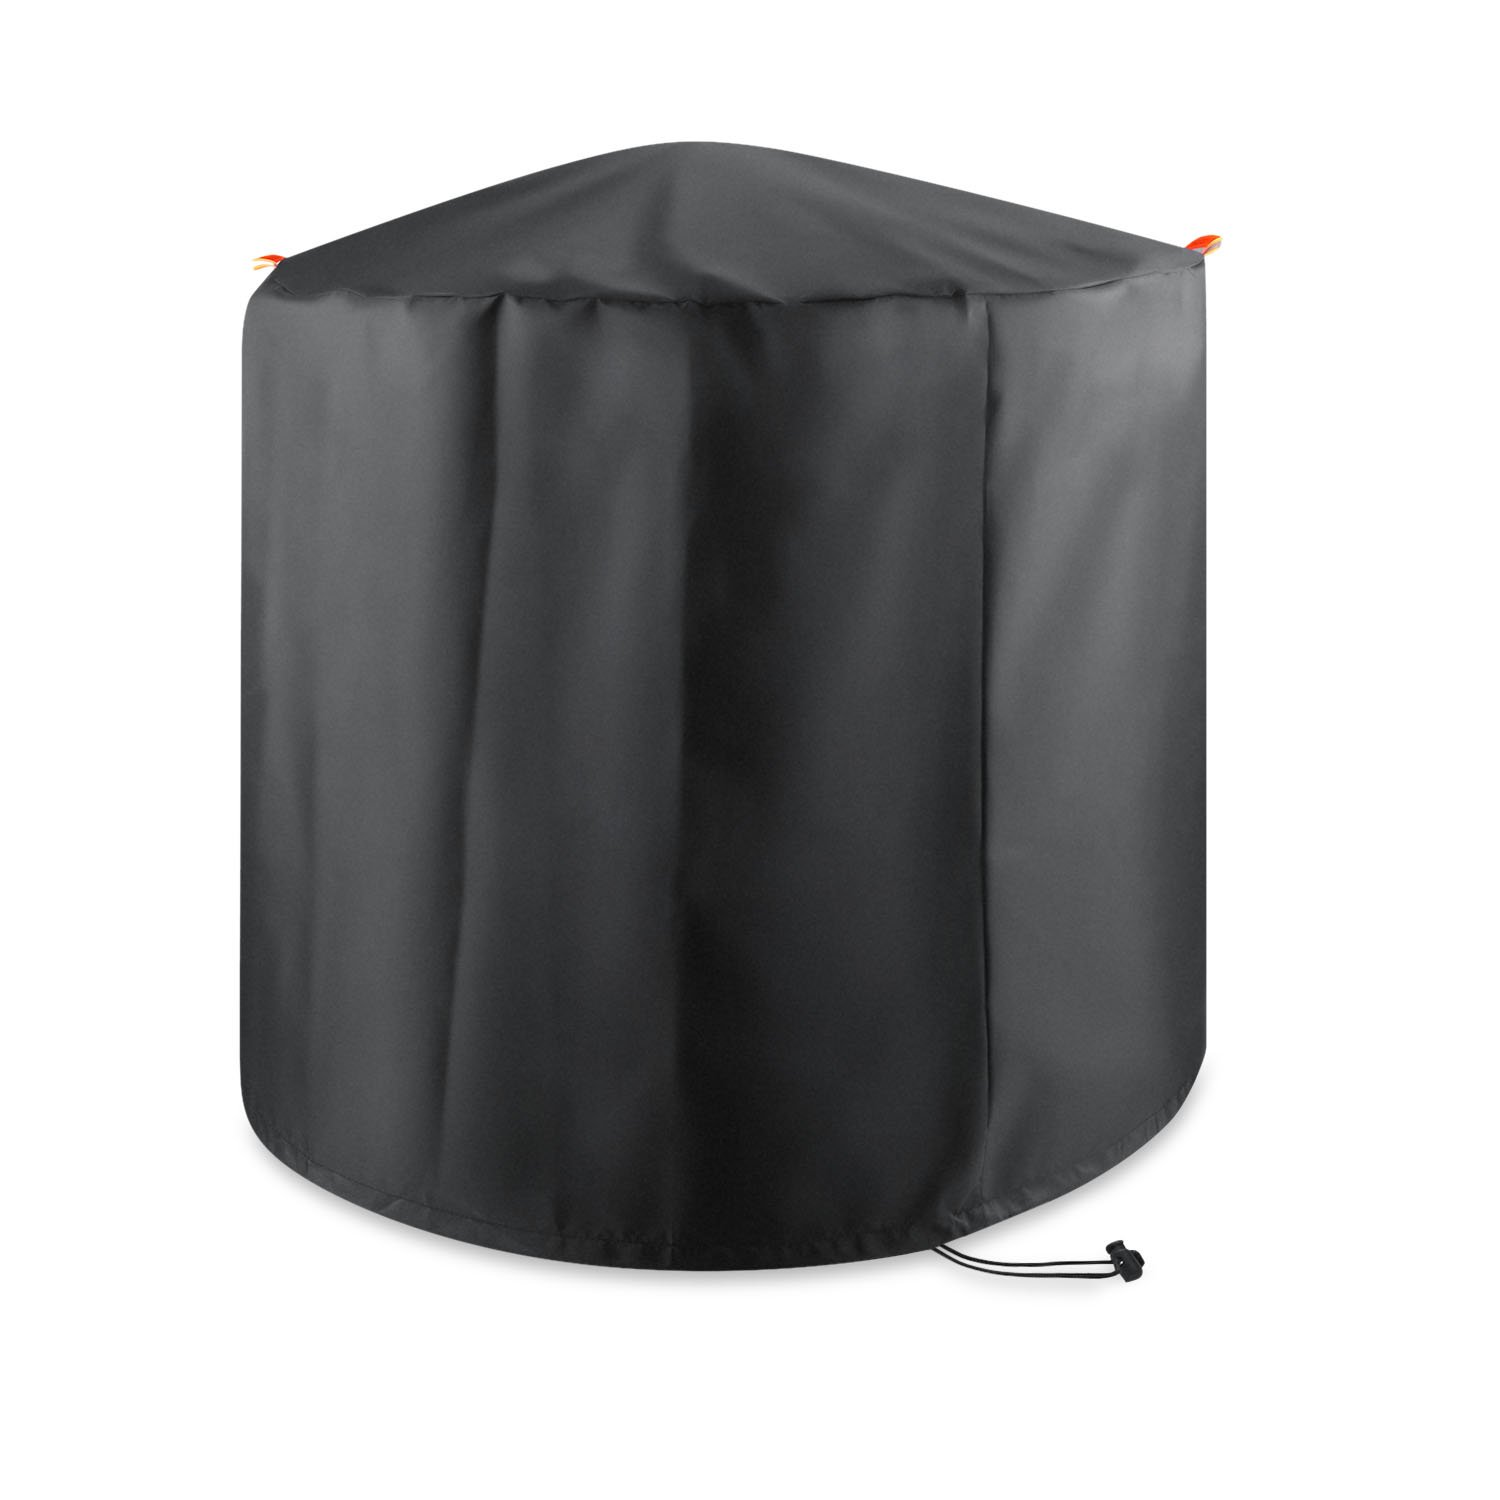 Barbecue Cover, GoFriend Round BBQ Cover Heavy Duty Waterproof BBQ Grill Cover 210D Breathable Oxford fabric Indoor Outdoor Rain Dust Protection with Storage Bag (80x59cm)